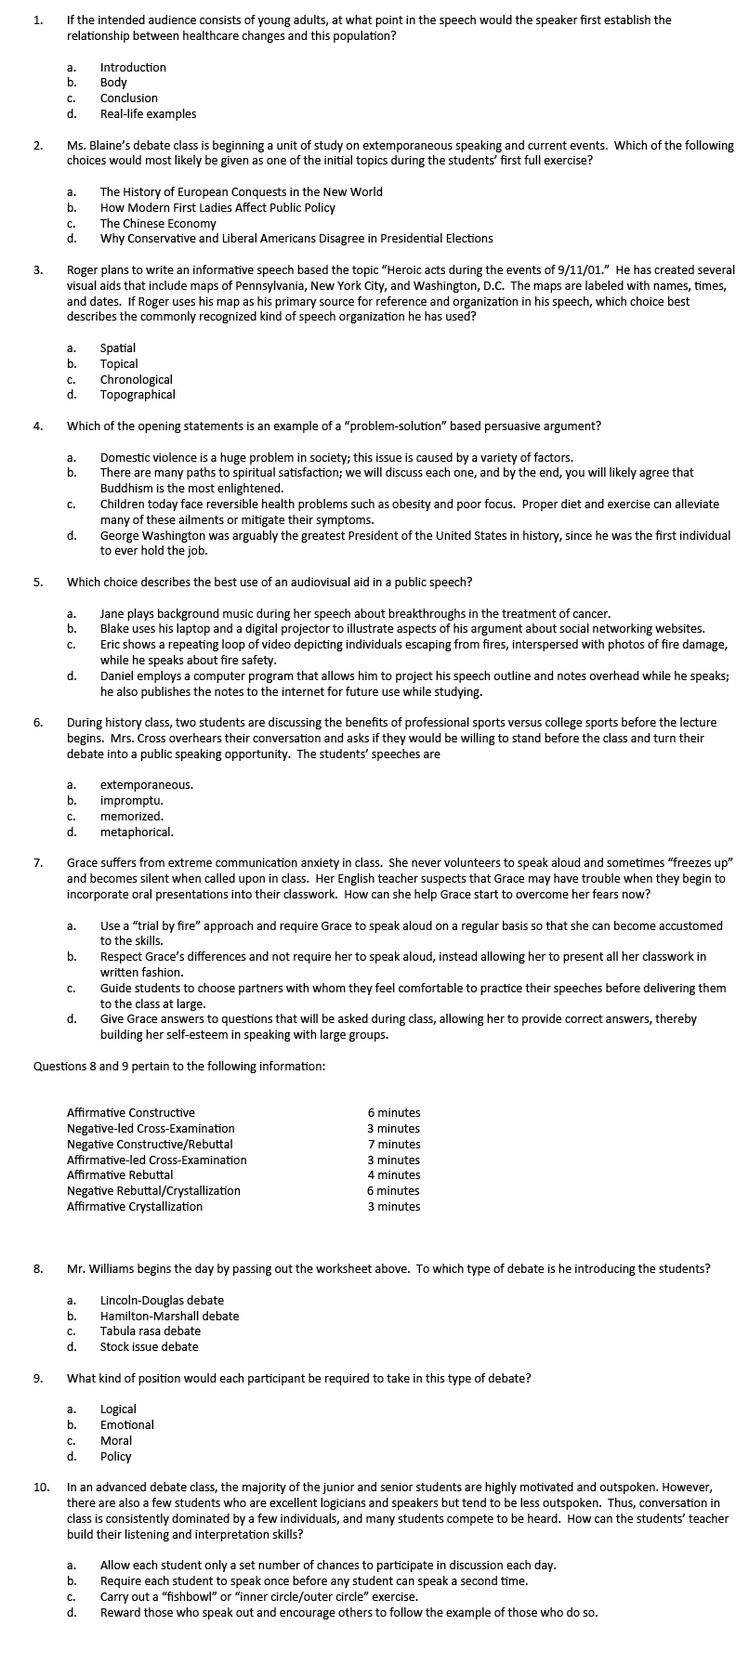 speech quiz answers Free parts of speech worksheets worksheets on nouns, verbs, pronouns yes, i have just completed and posted the oft requested parts of speech test answer key.